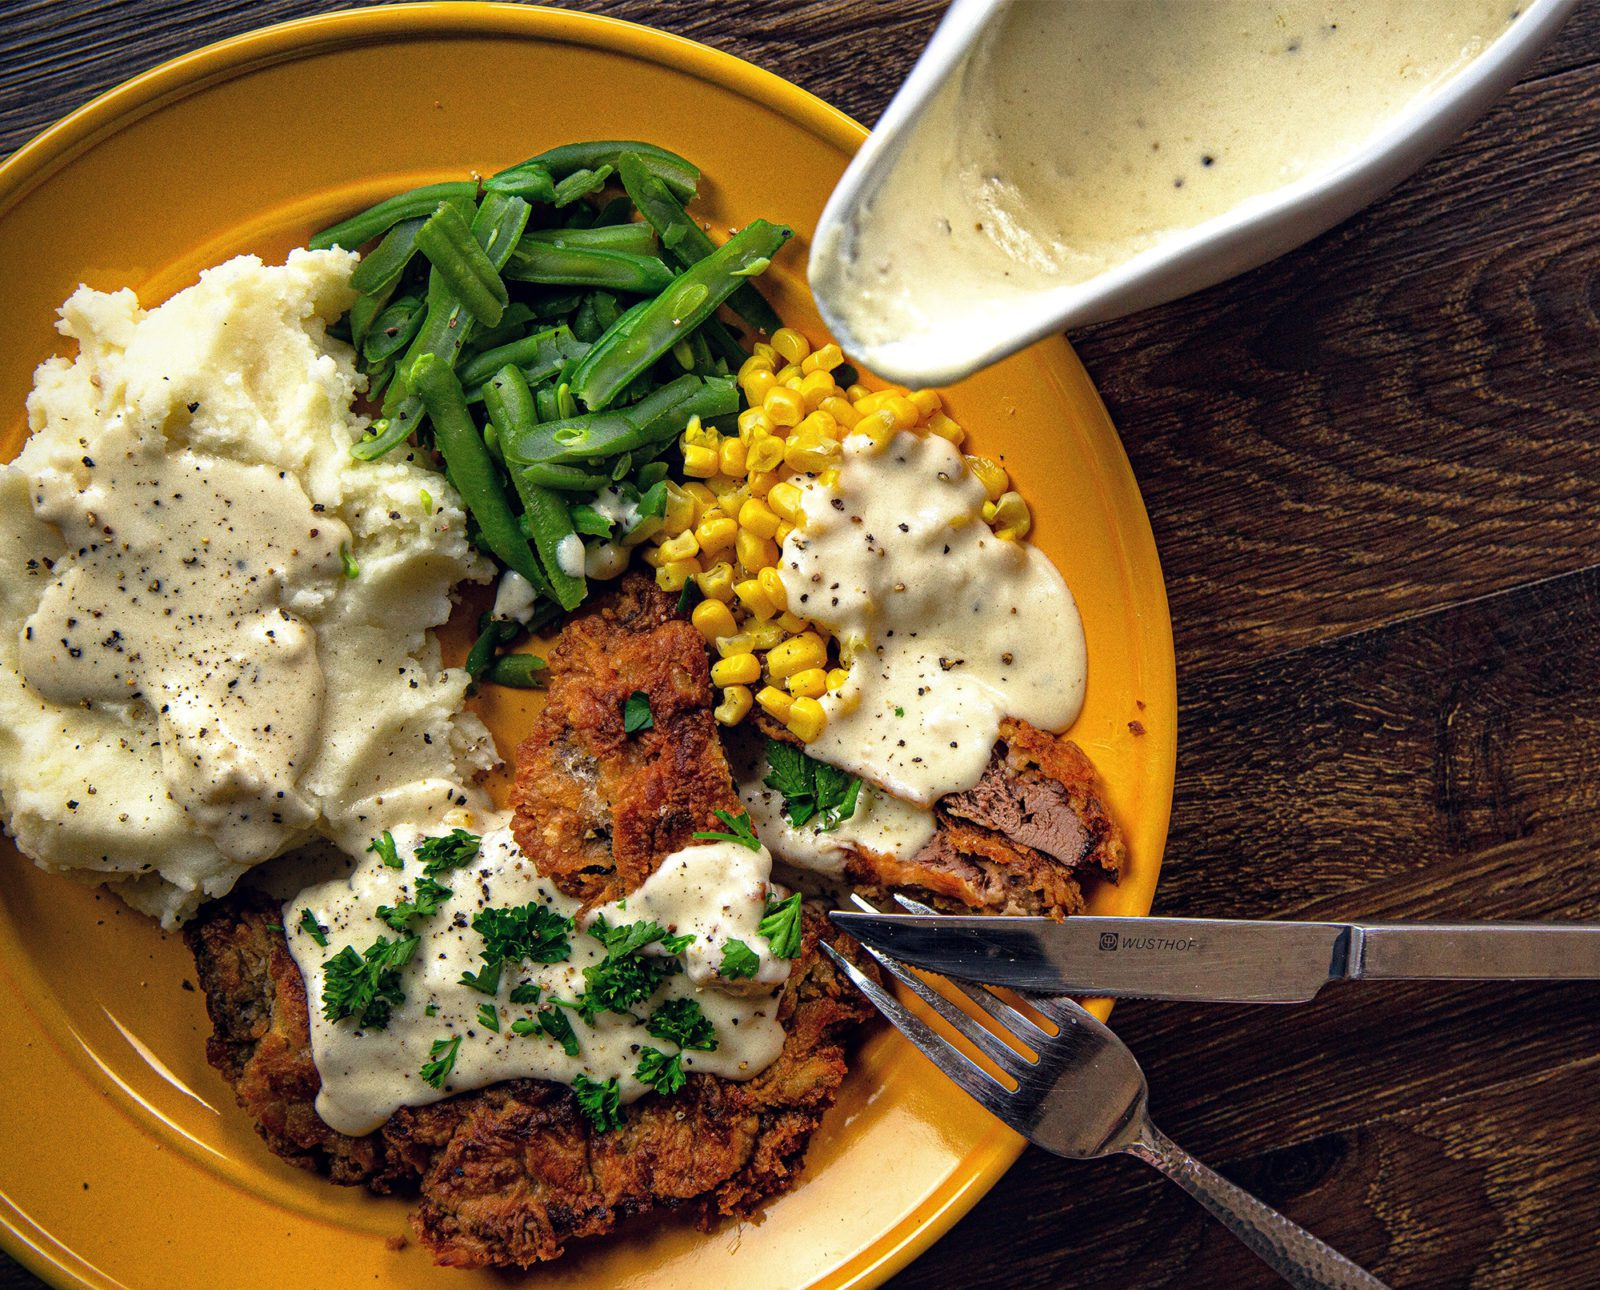 Chicken fried prairie chicken sits on a plate with sides.